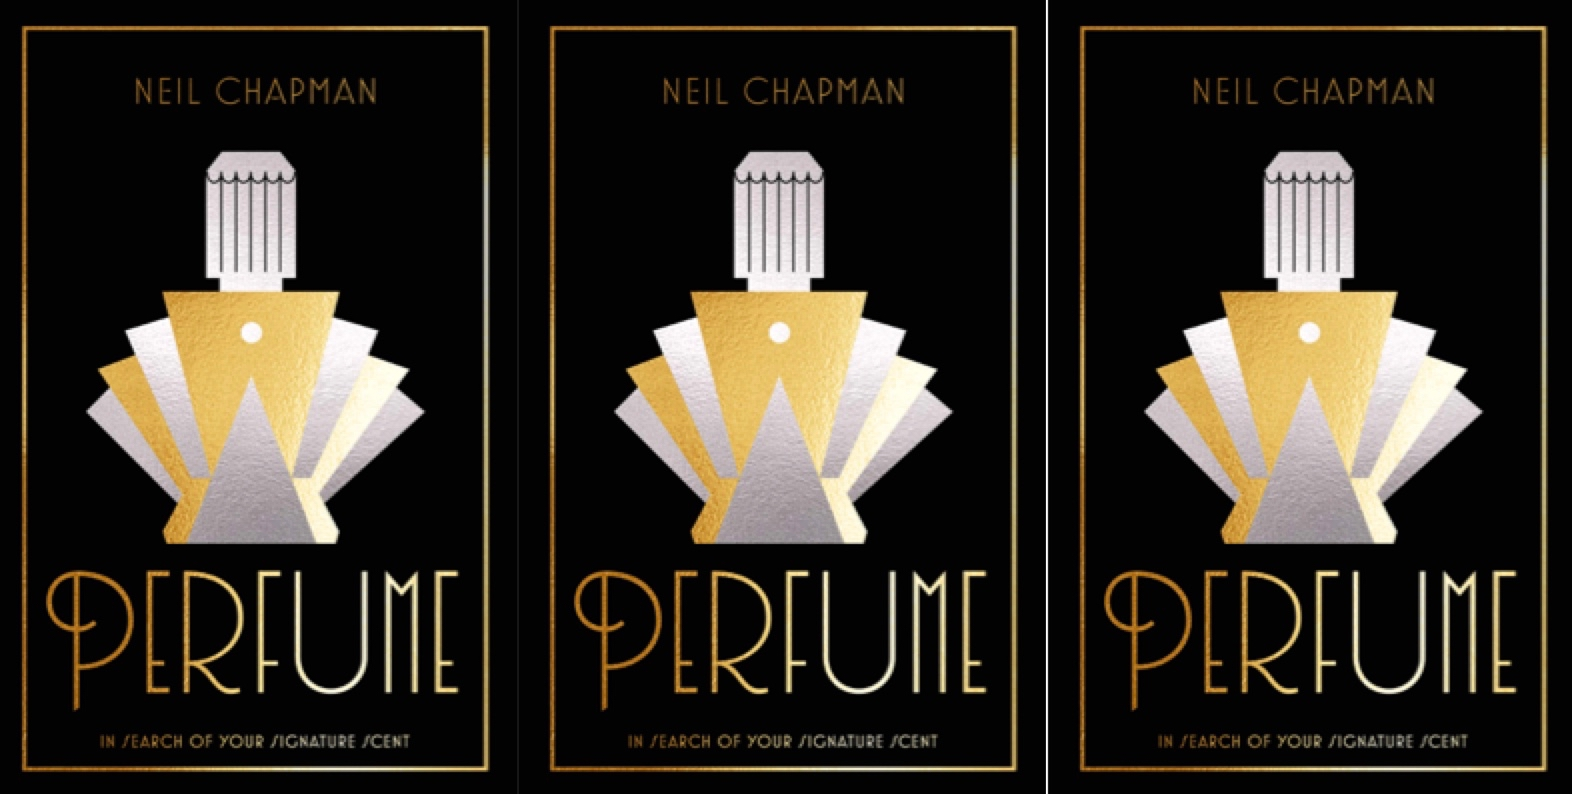 'Just the best perfume book we've read in YEARS…'